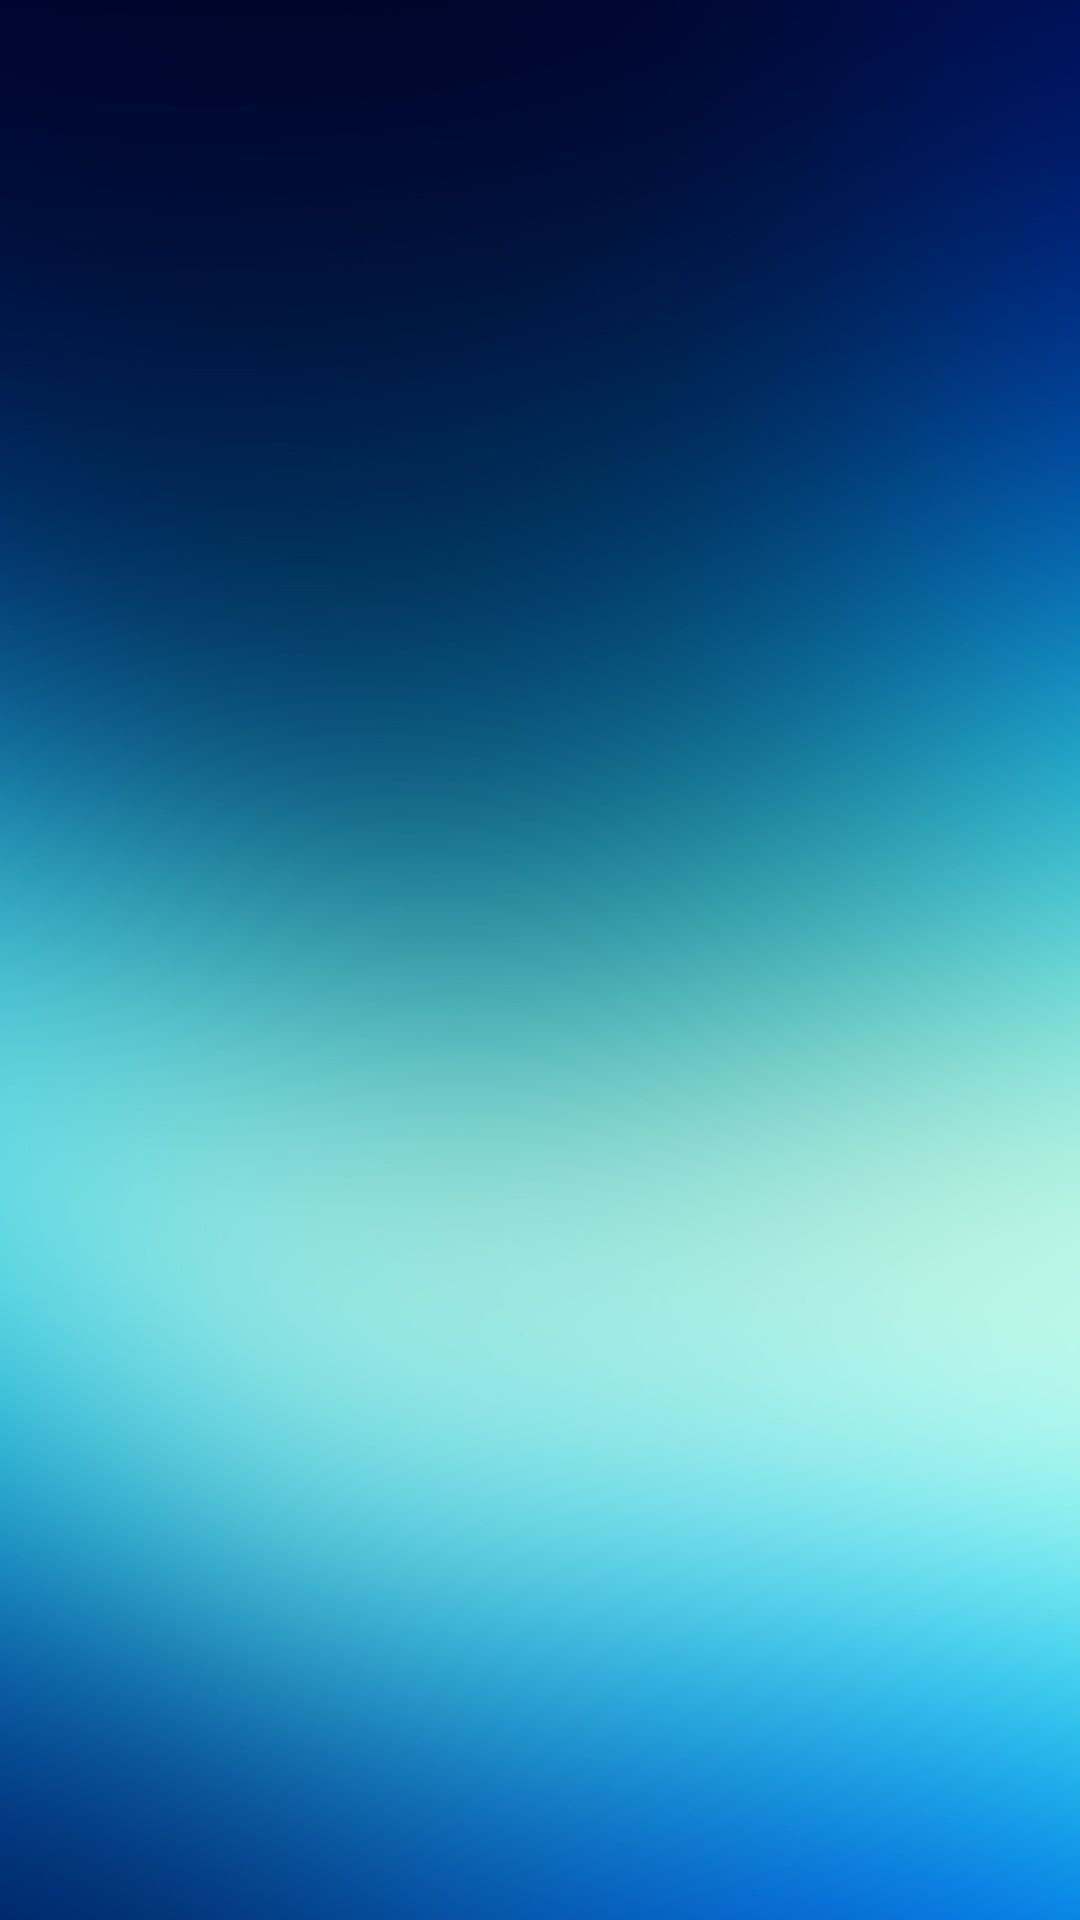 1920x1130 Blue Gradient Wallpapers HD